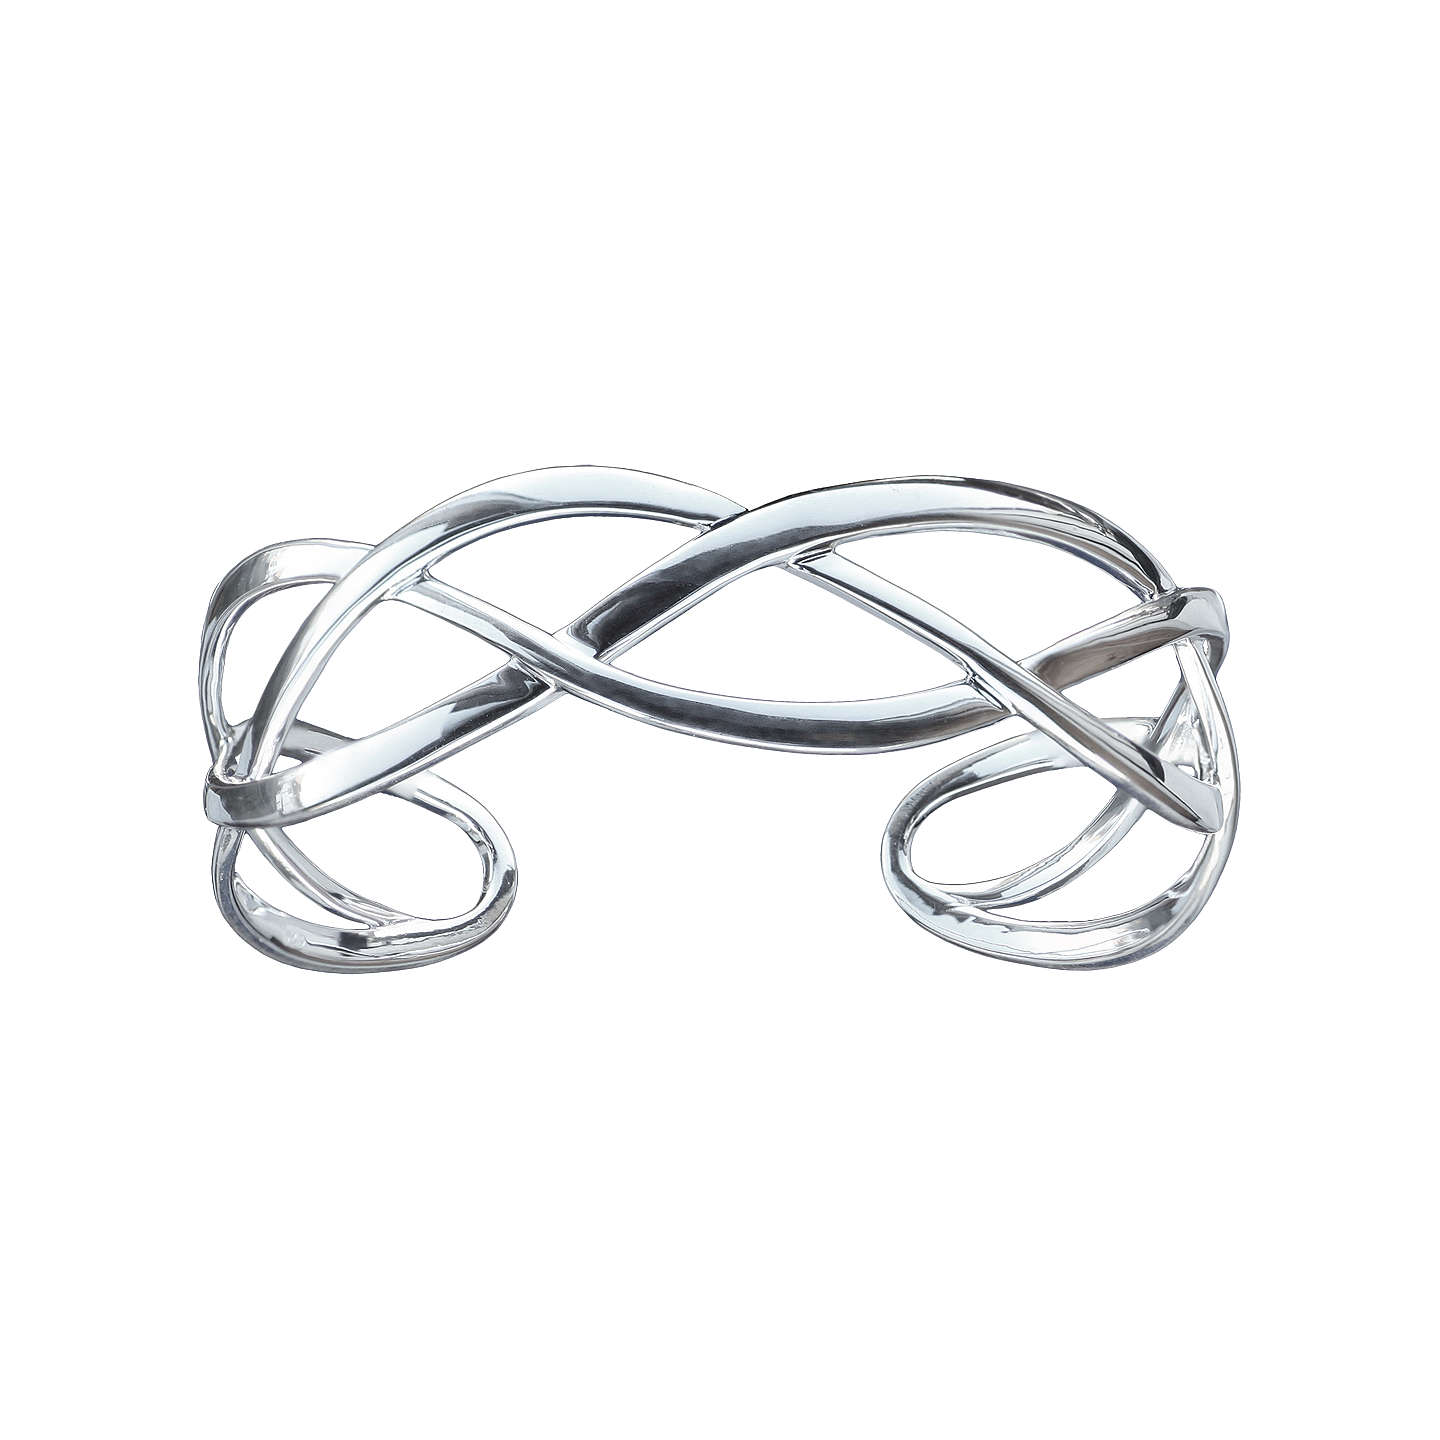 silver from fred bangle cuff bangles bennett bracelets id image